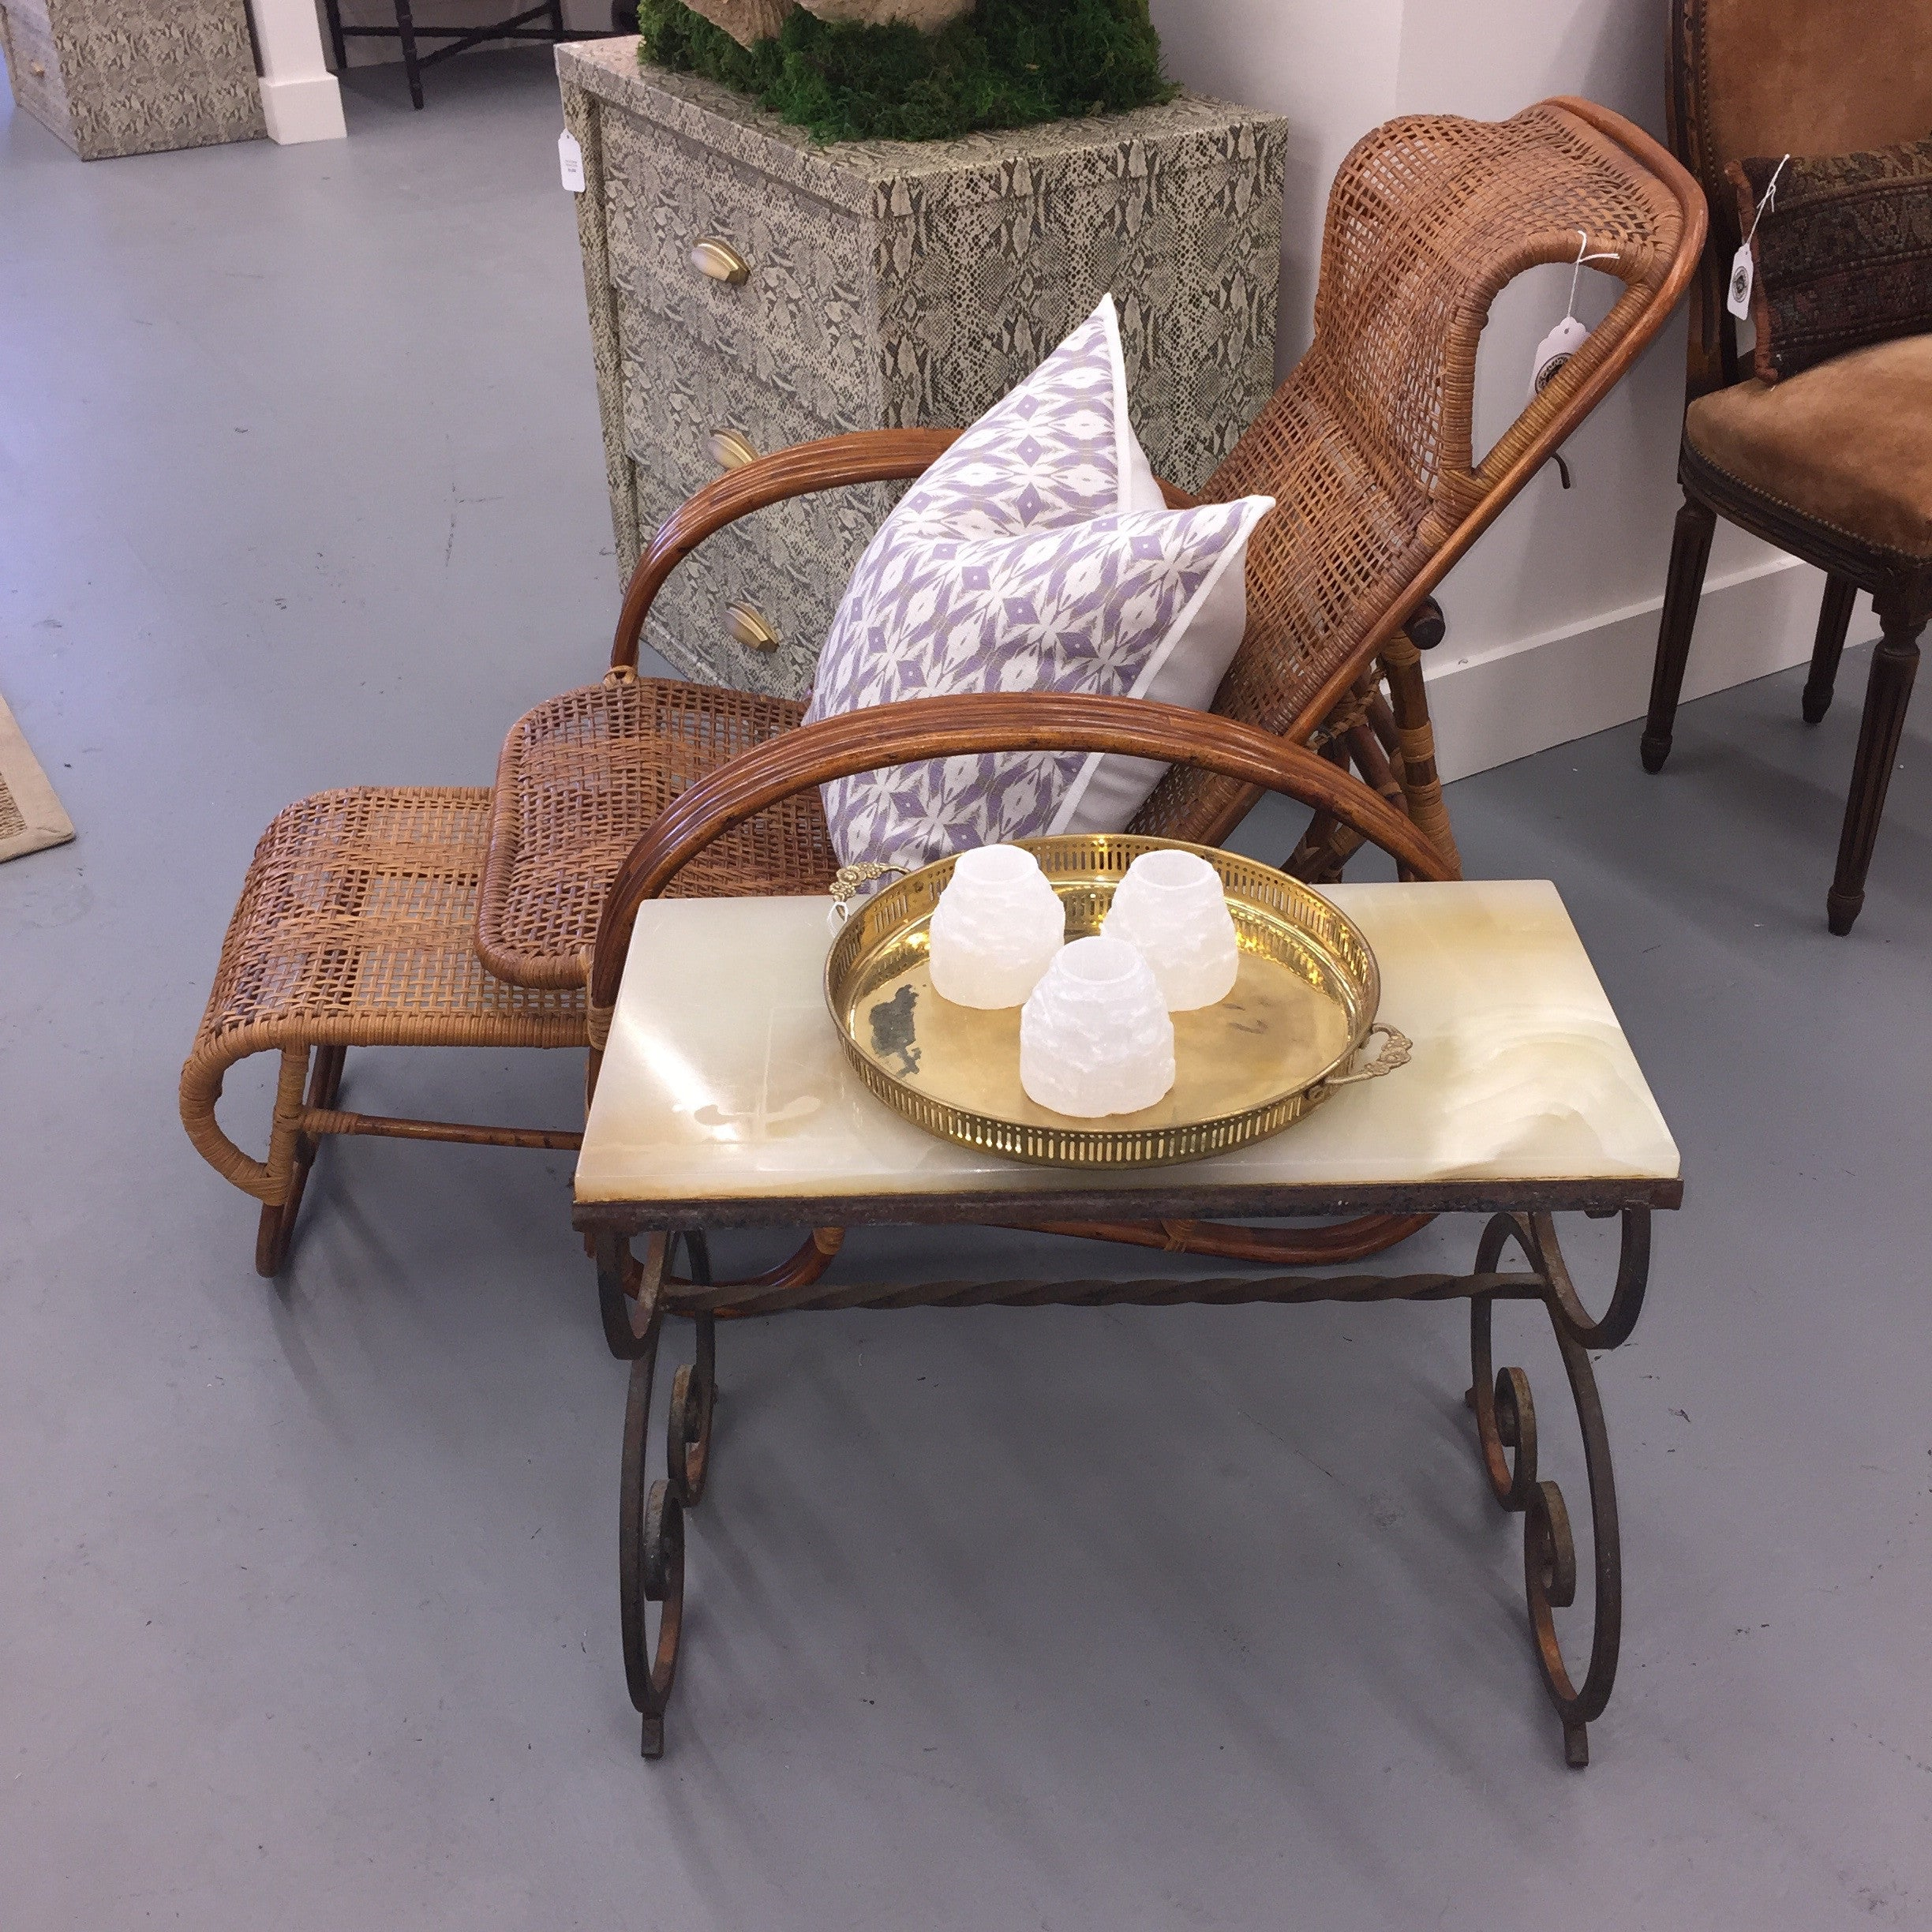 Wrought Iron Table with Quartz Top Park Eighth